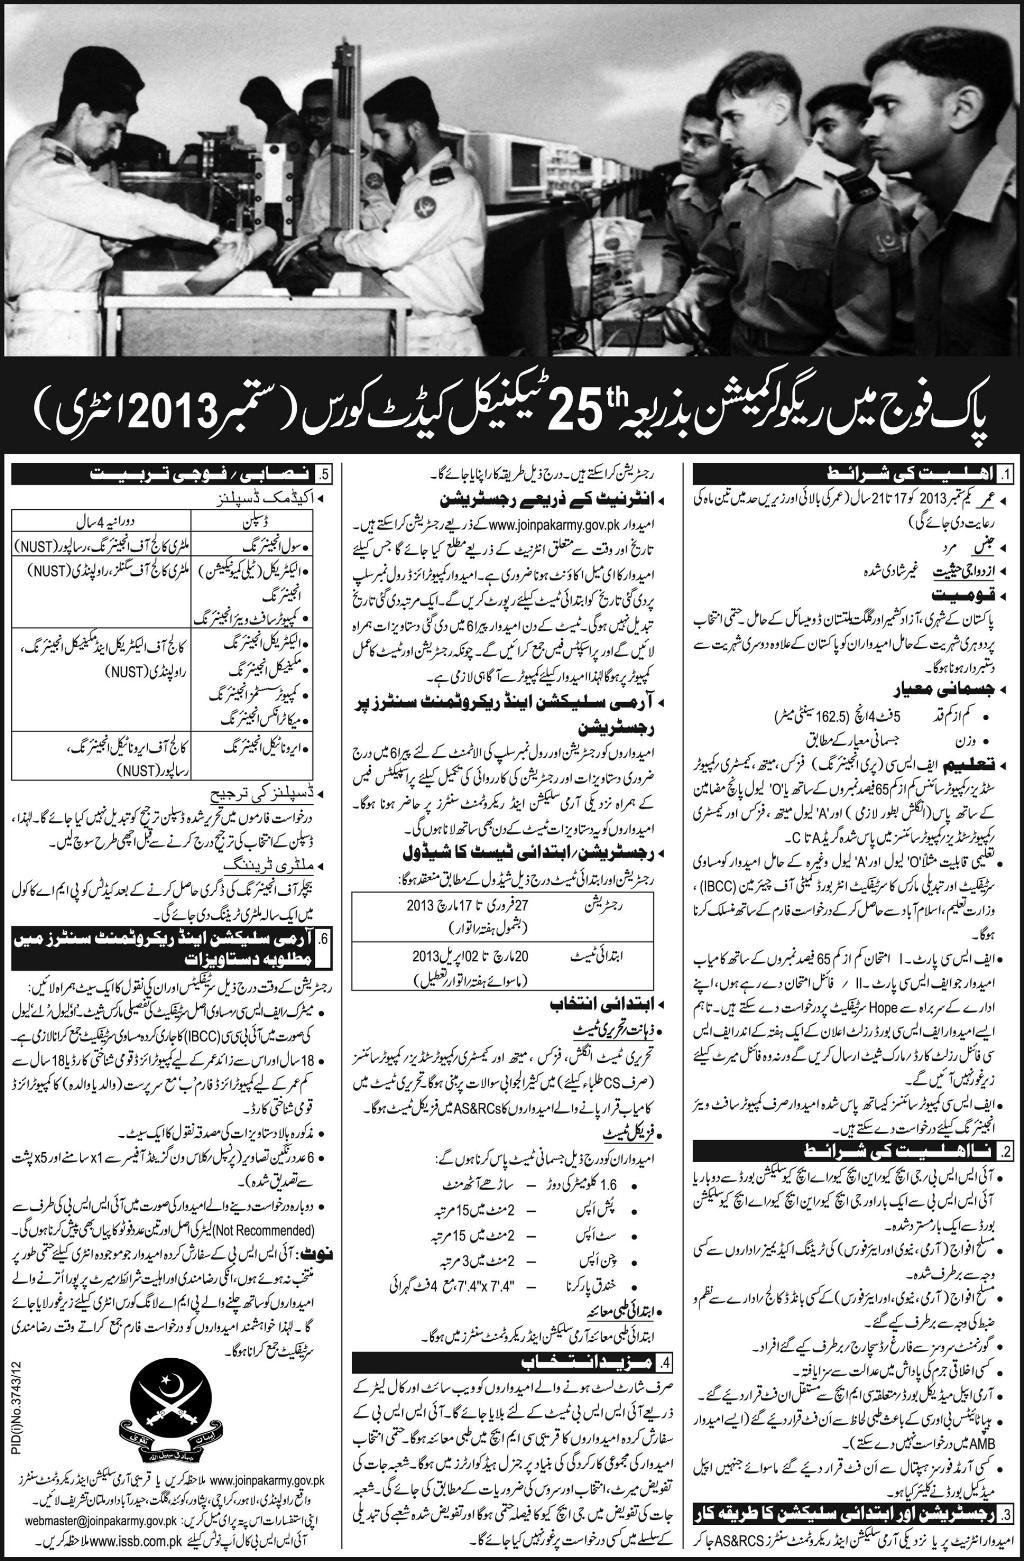 Join Pakistan Army Technical Cadet Course 2013 Regular Commission